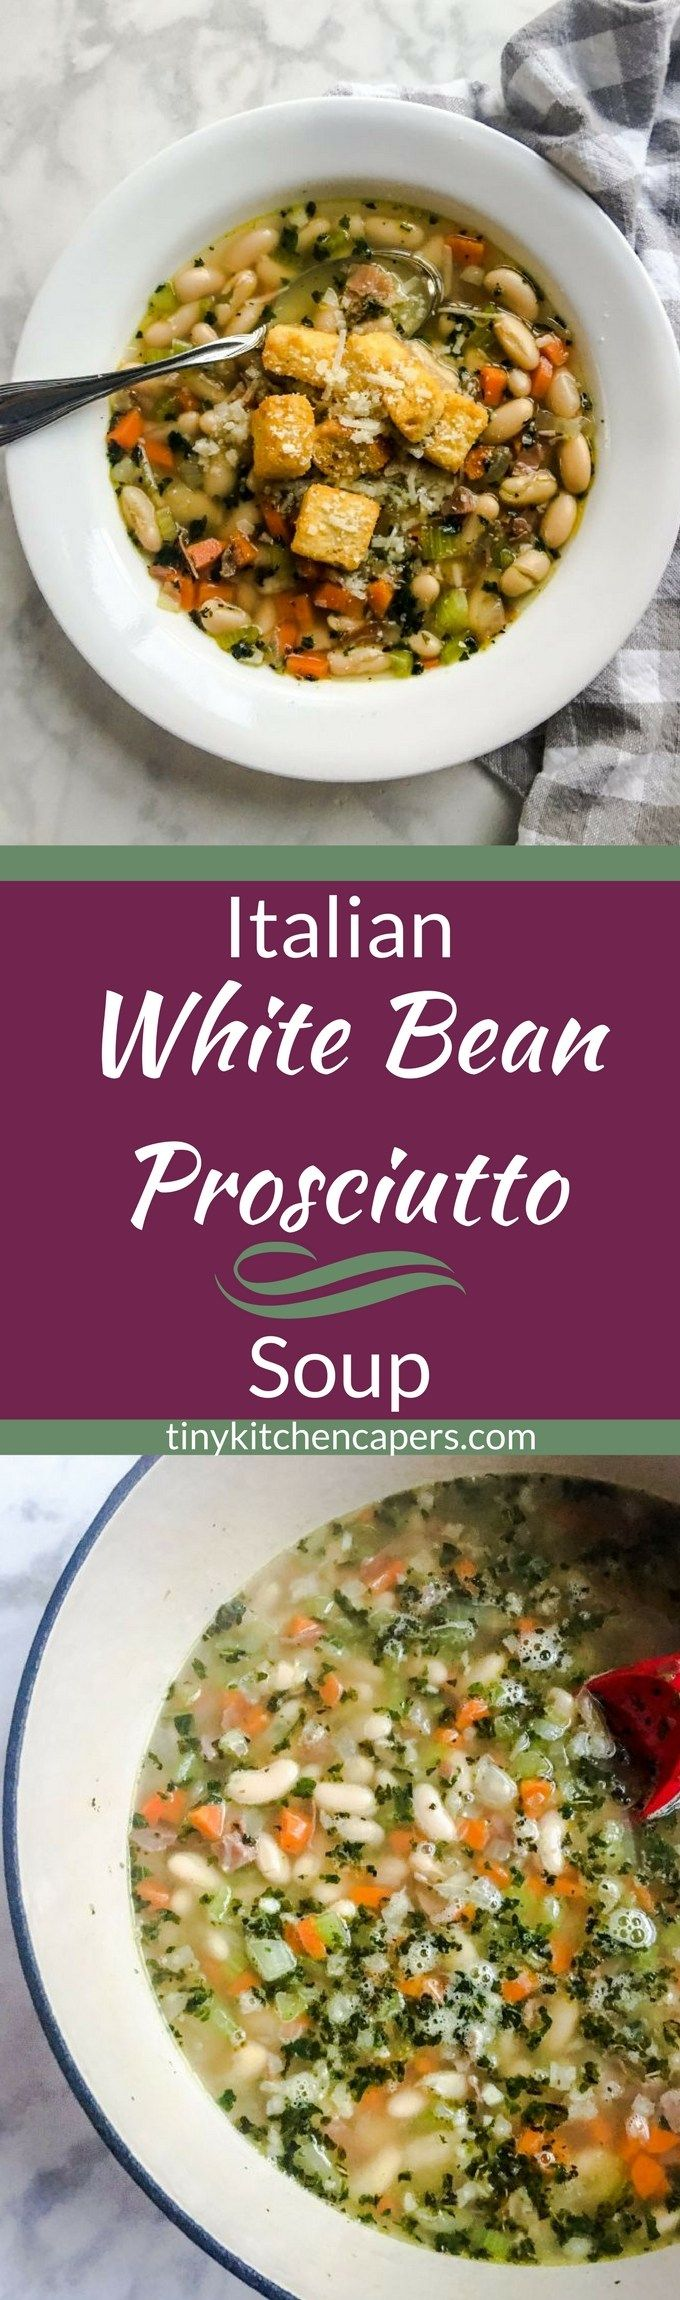 This healthy, hearty white bean soup is flavor-packed with italian herbs, garlic, and prosciutto. A warm, satisfying soup for even the coldest of days. #soup | tinykitchencapers.com